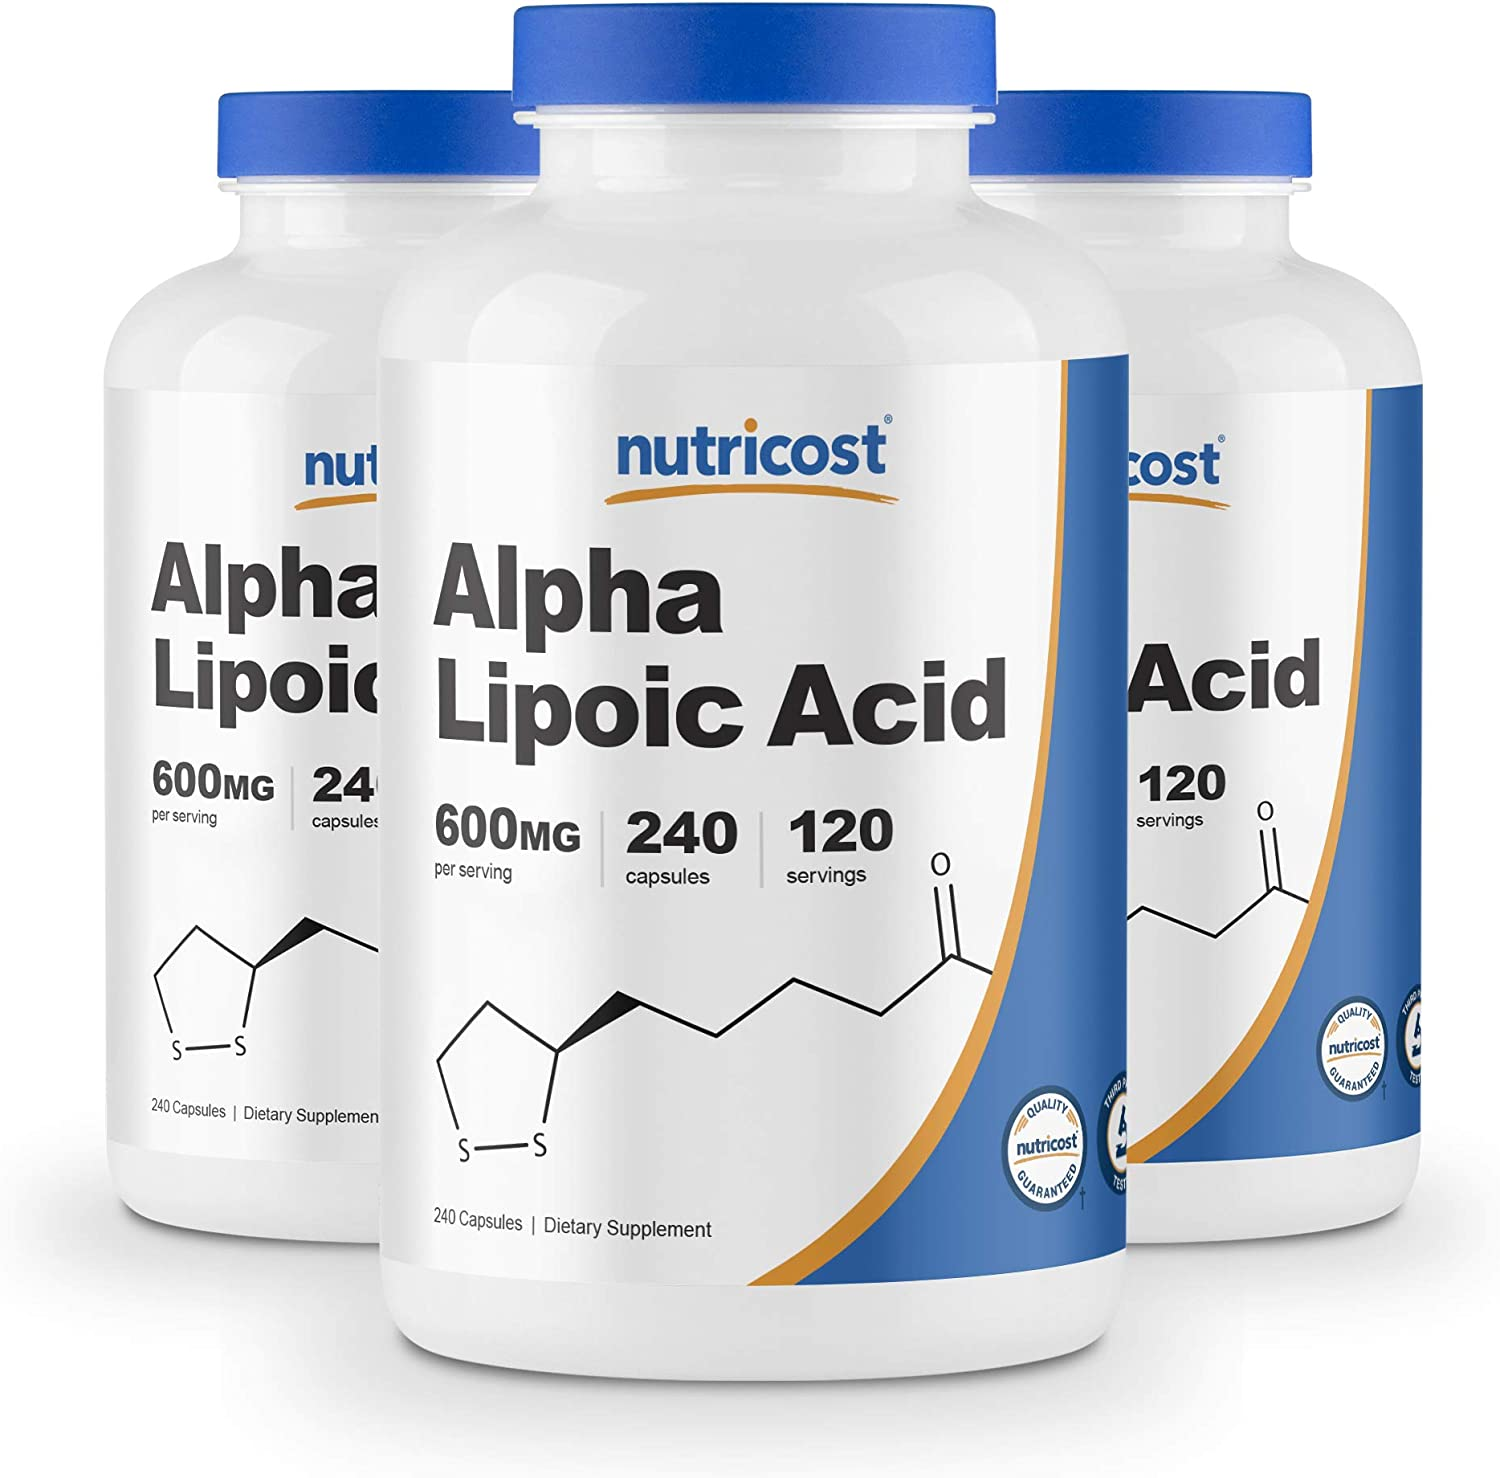 Nutricost Alpha Lipoic Acid - 600mg Serving 240 Caps (3 Bottles)